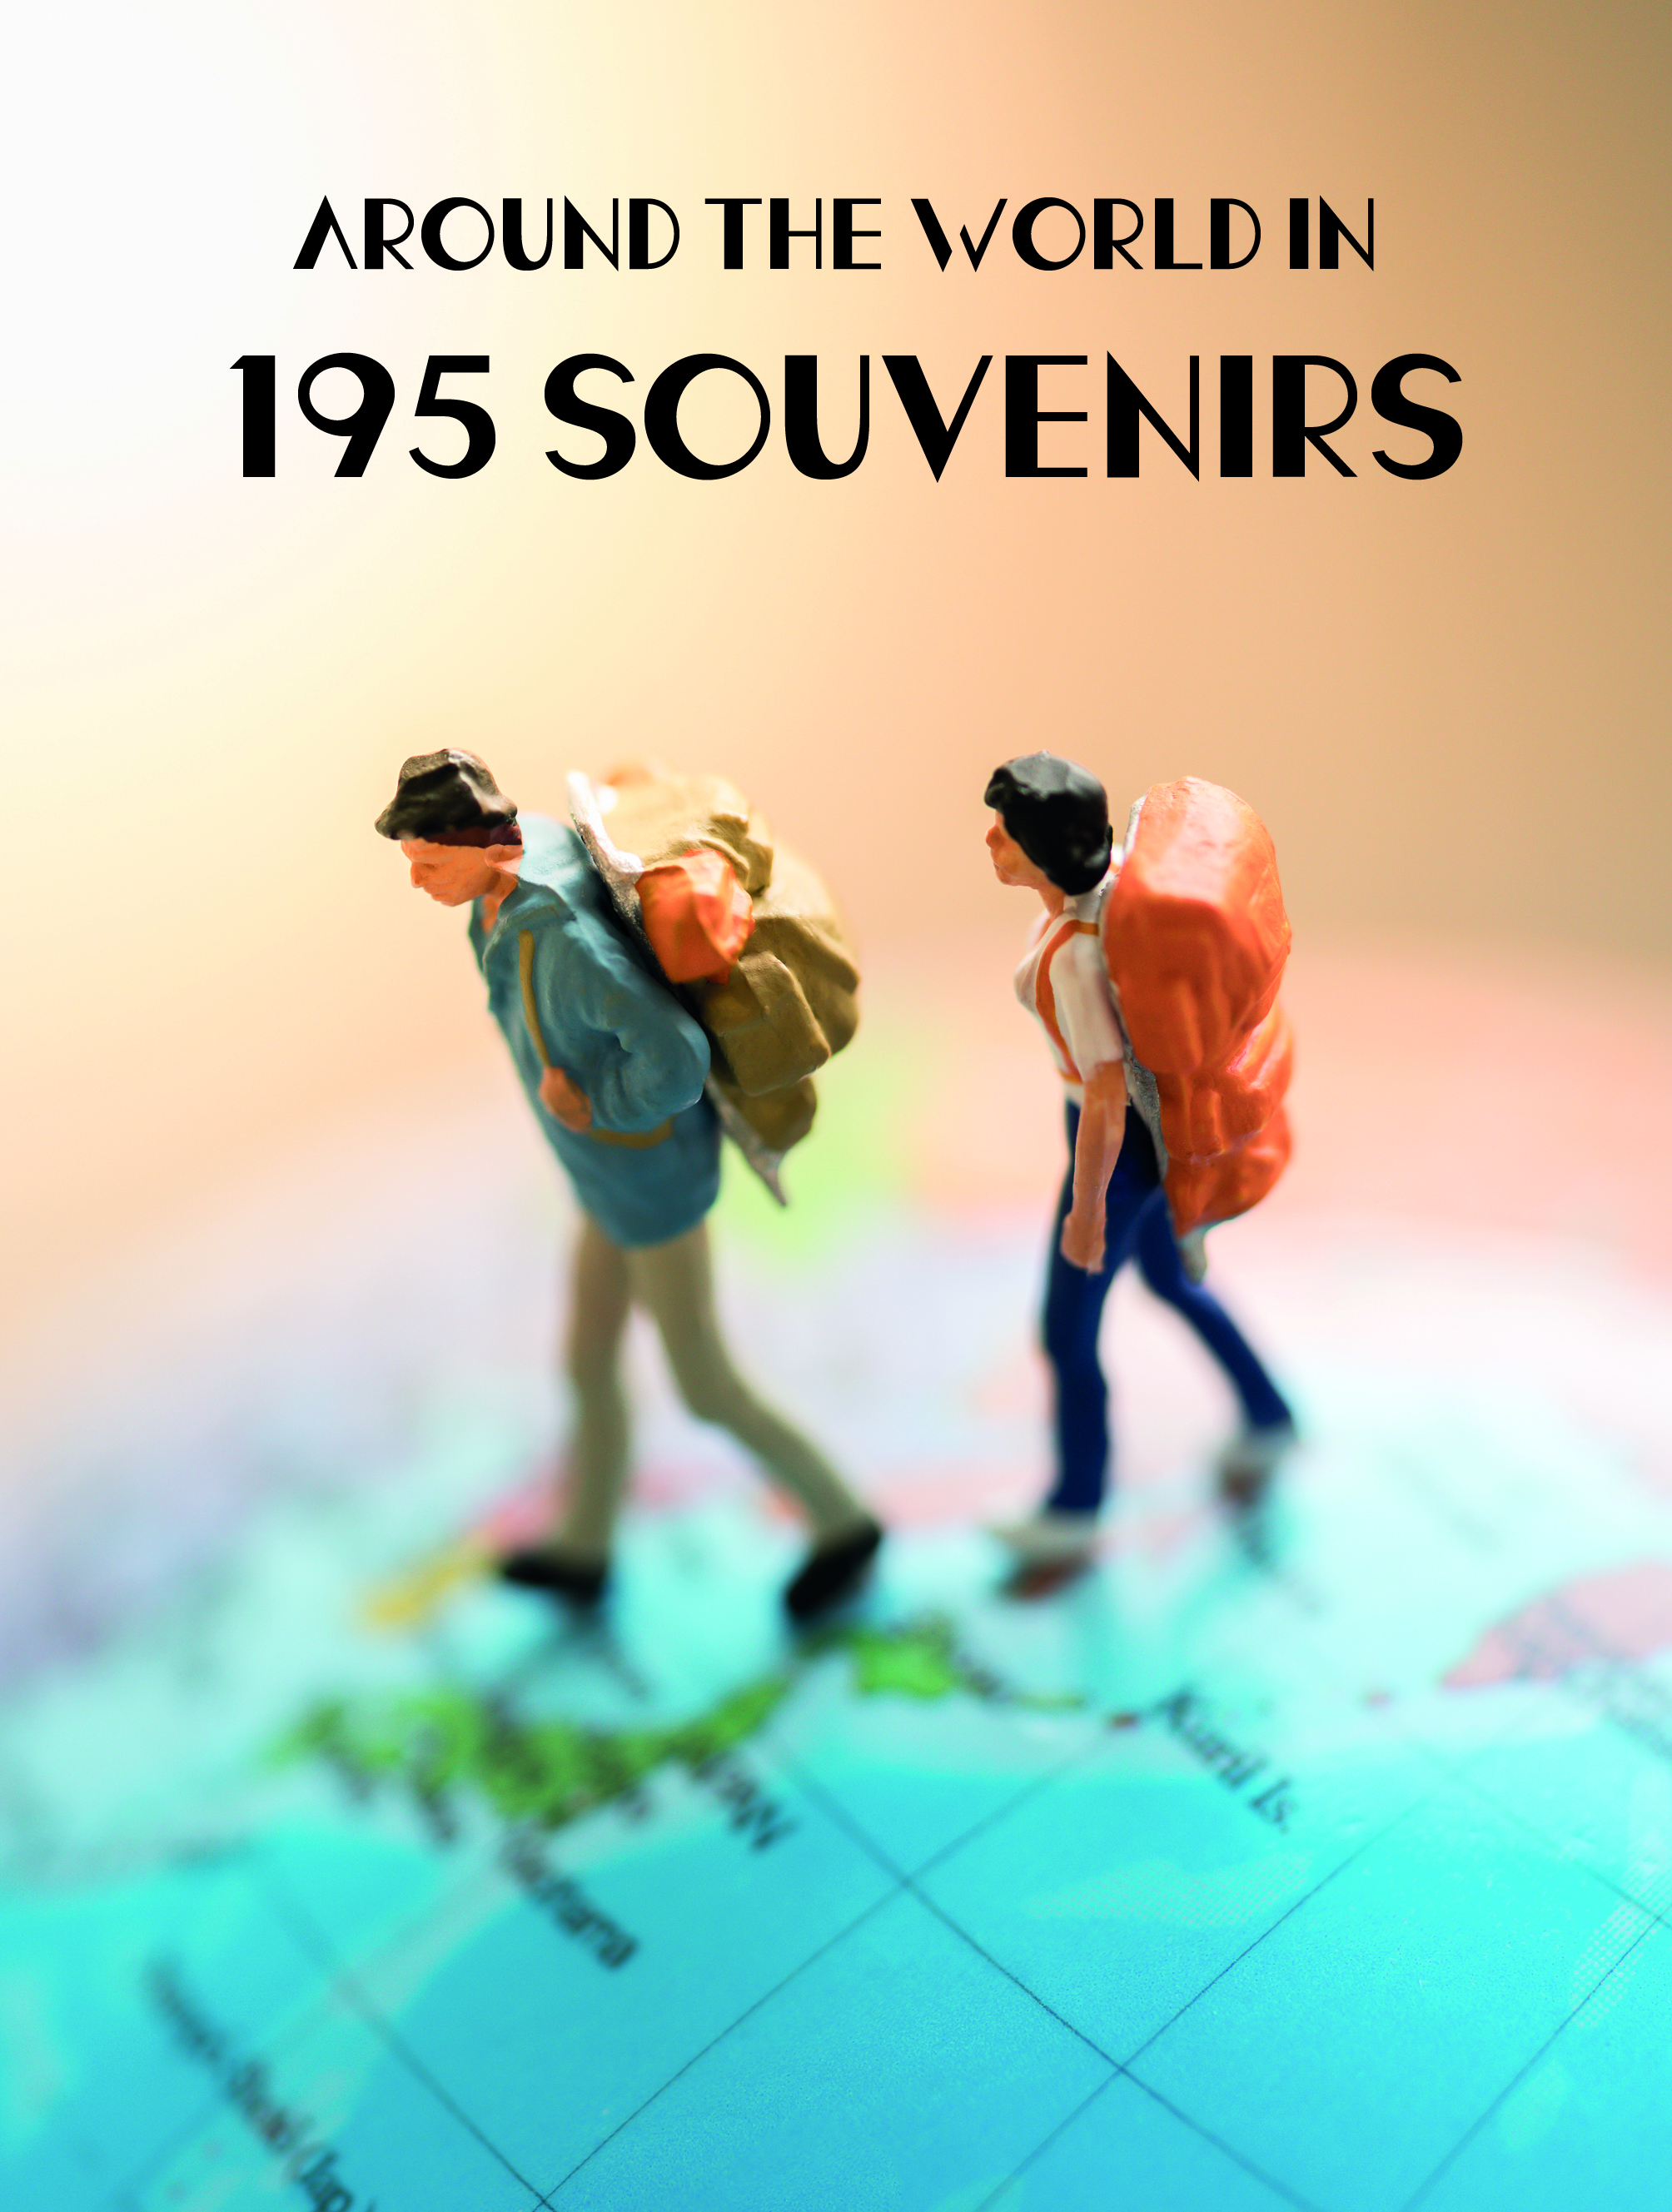 Around the world in 195 souvenirs cover.jpg